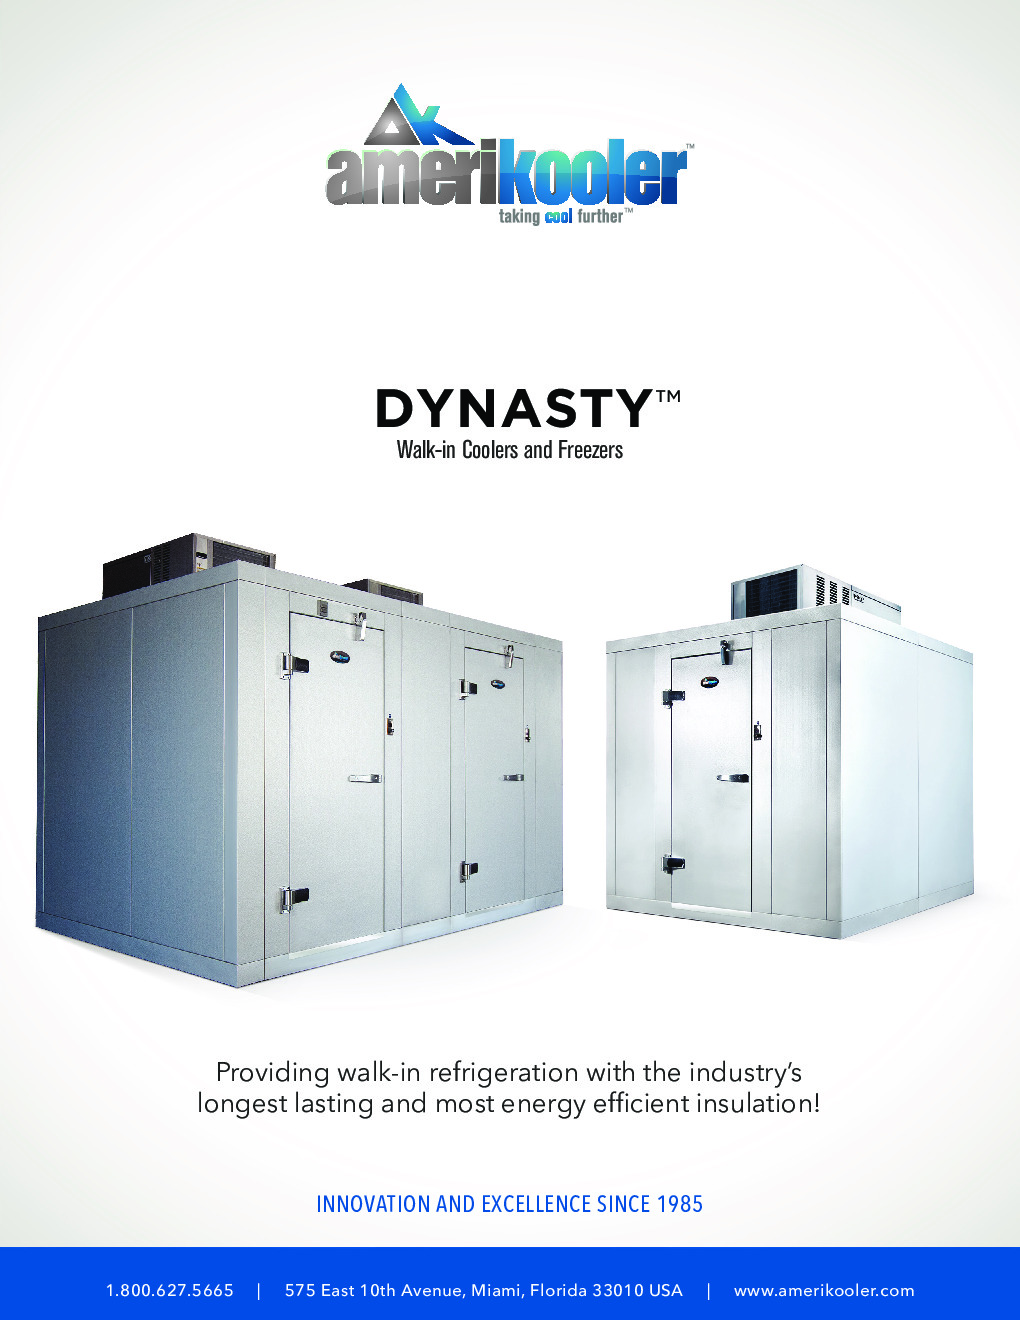 AmeriKooler DW081277F-6/6-RM 8' X 12' Walk-In Cooler, 6' L Cooler with Floor and 6' L Freezer, Remote